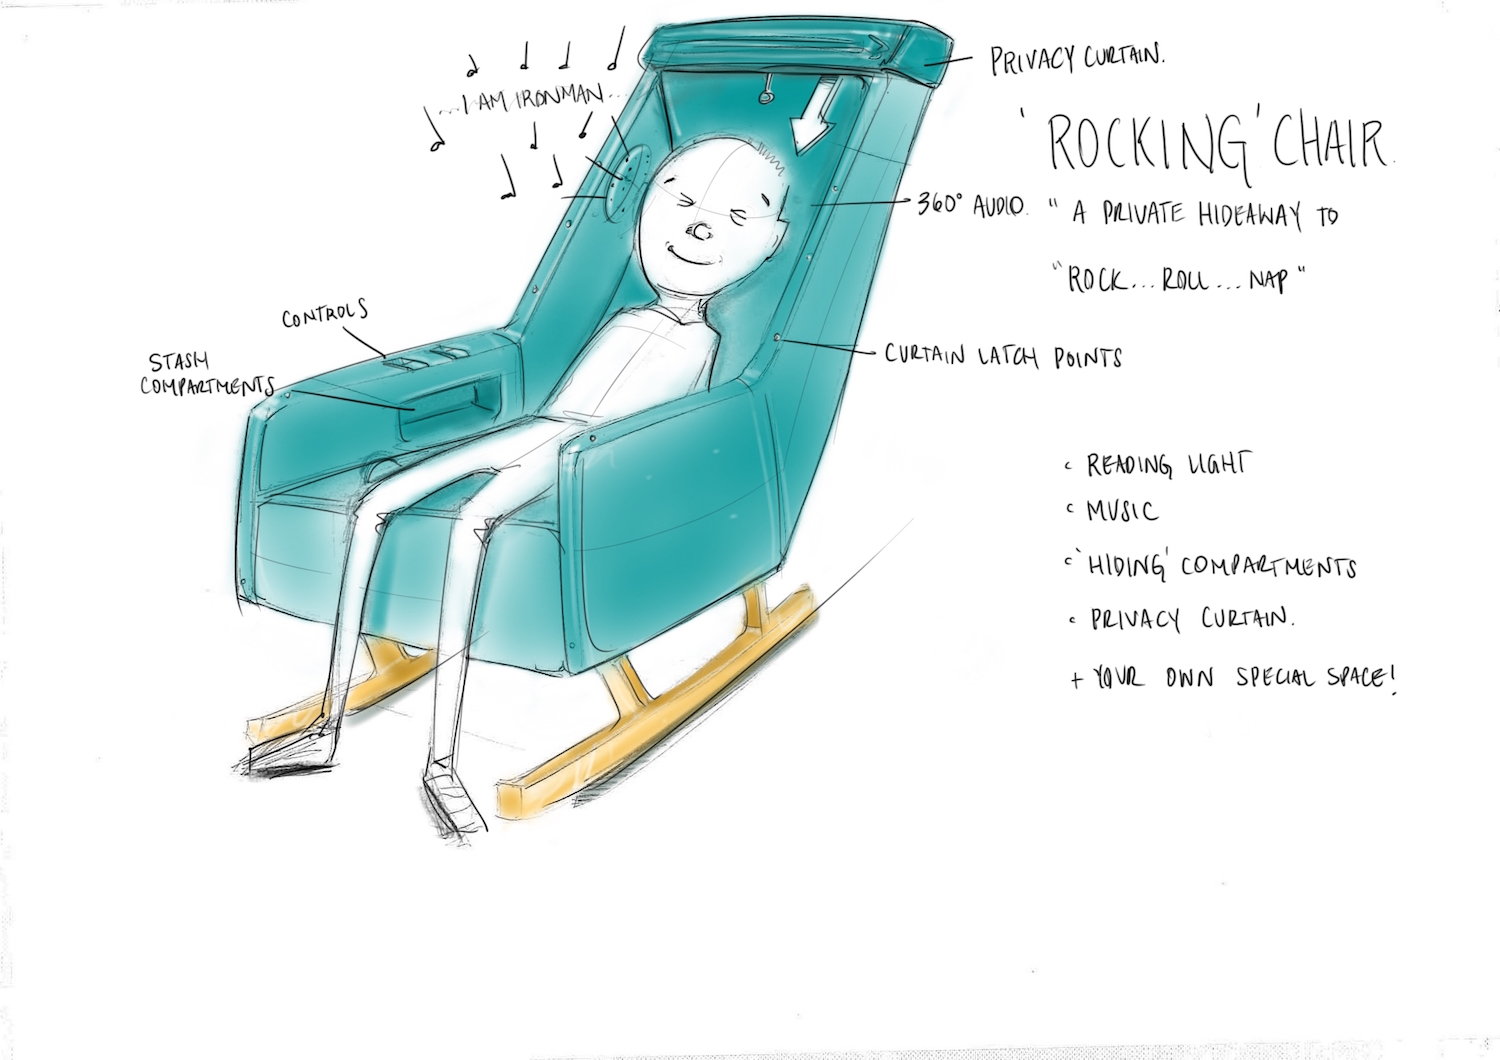 Rocking chair1.jpg